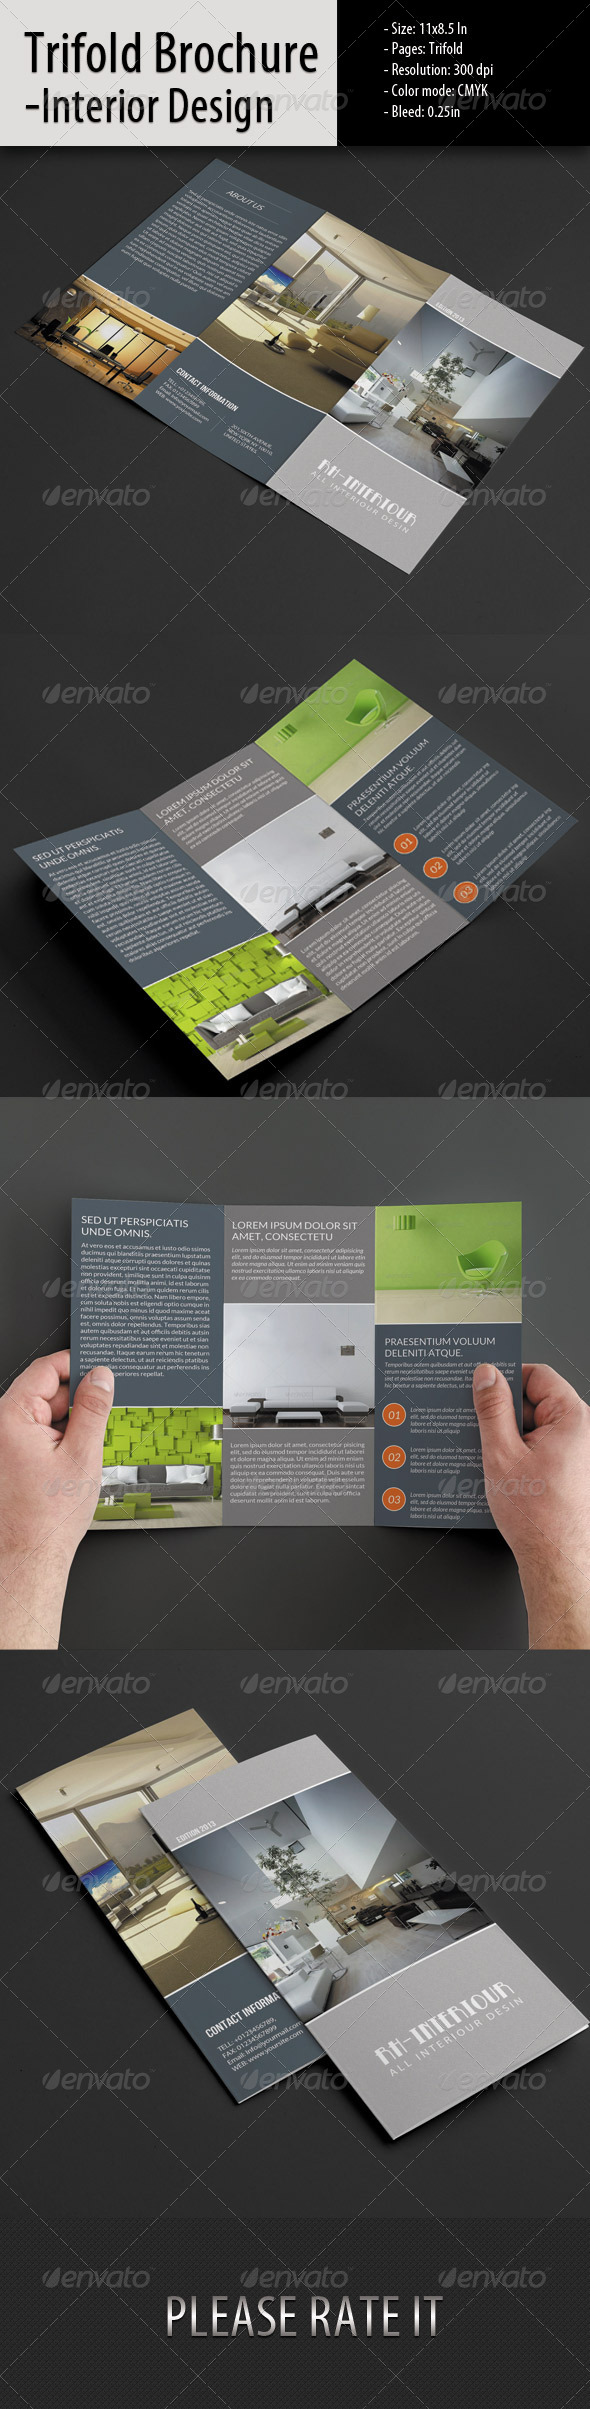 Trifold Brochure for Interior Design